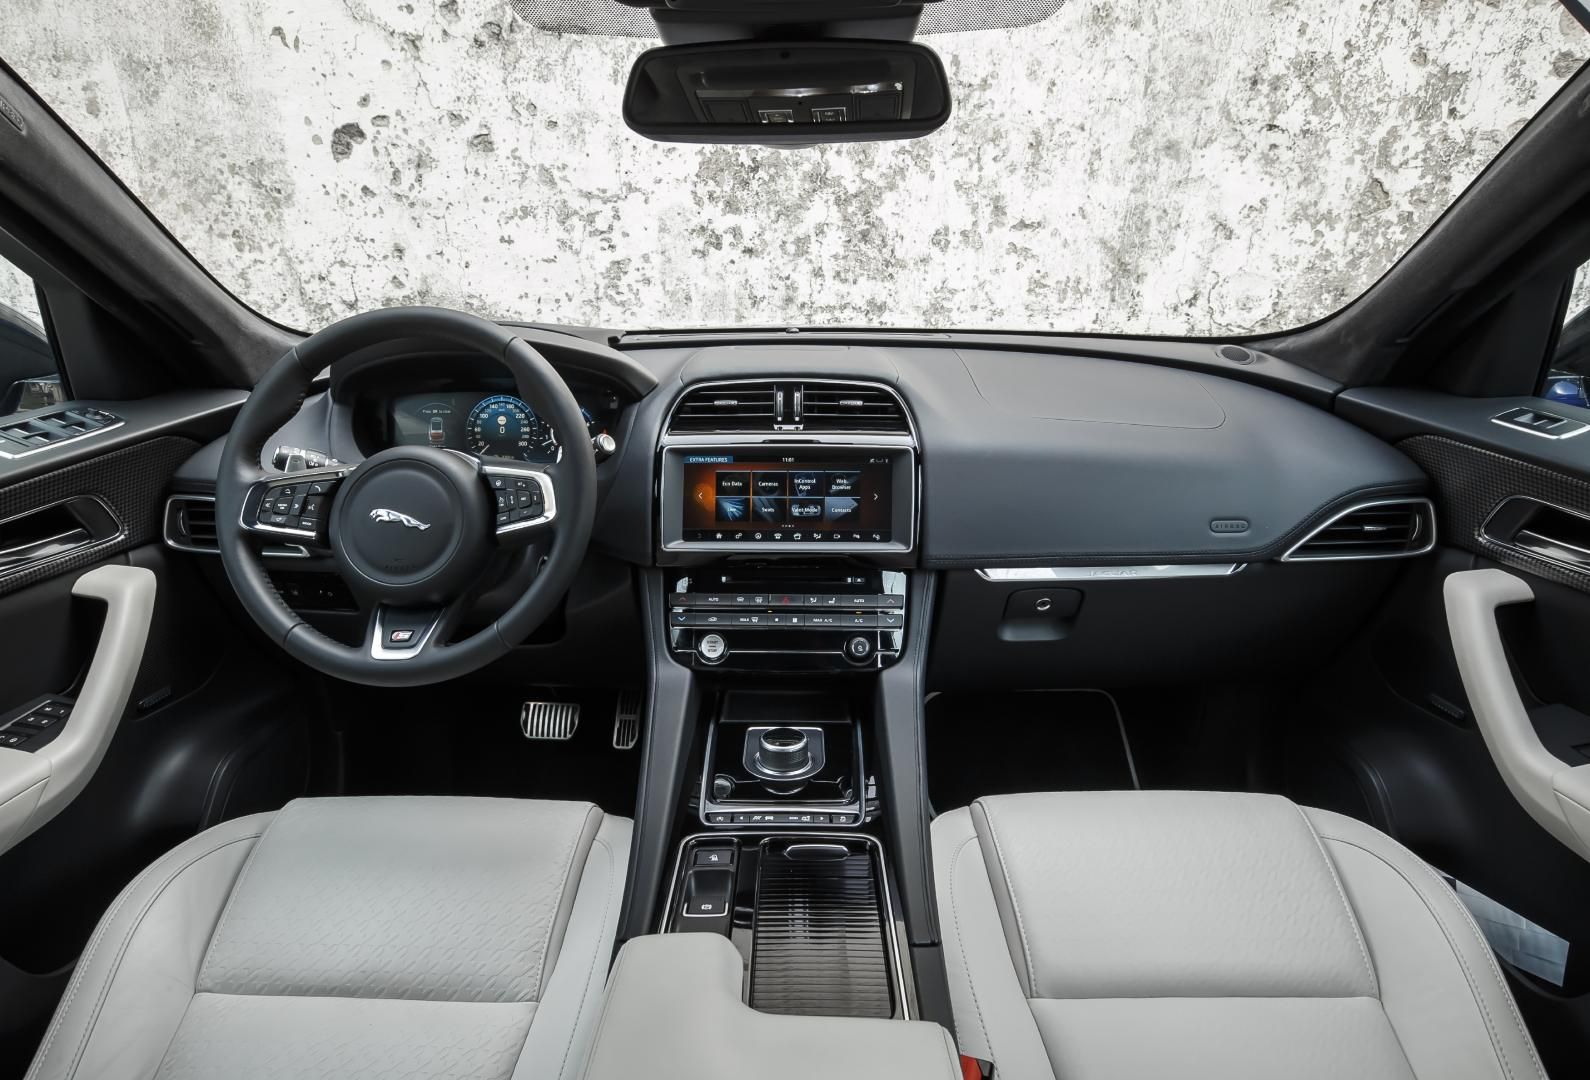 Test jaguar f pace s 3 0 v6 380 pk topgear for Interieur jaguar f pace